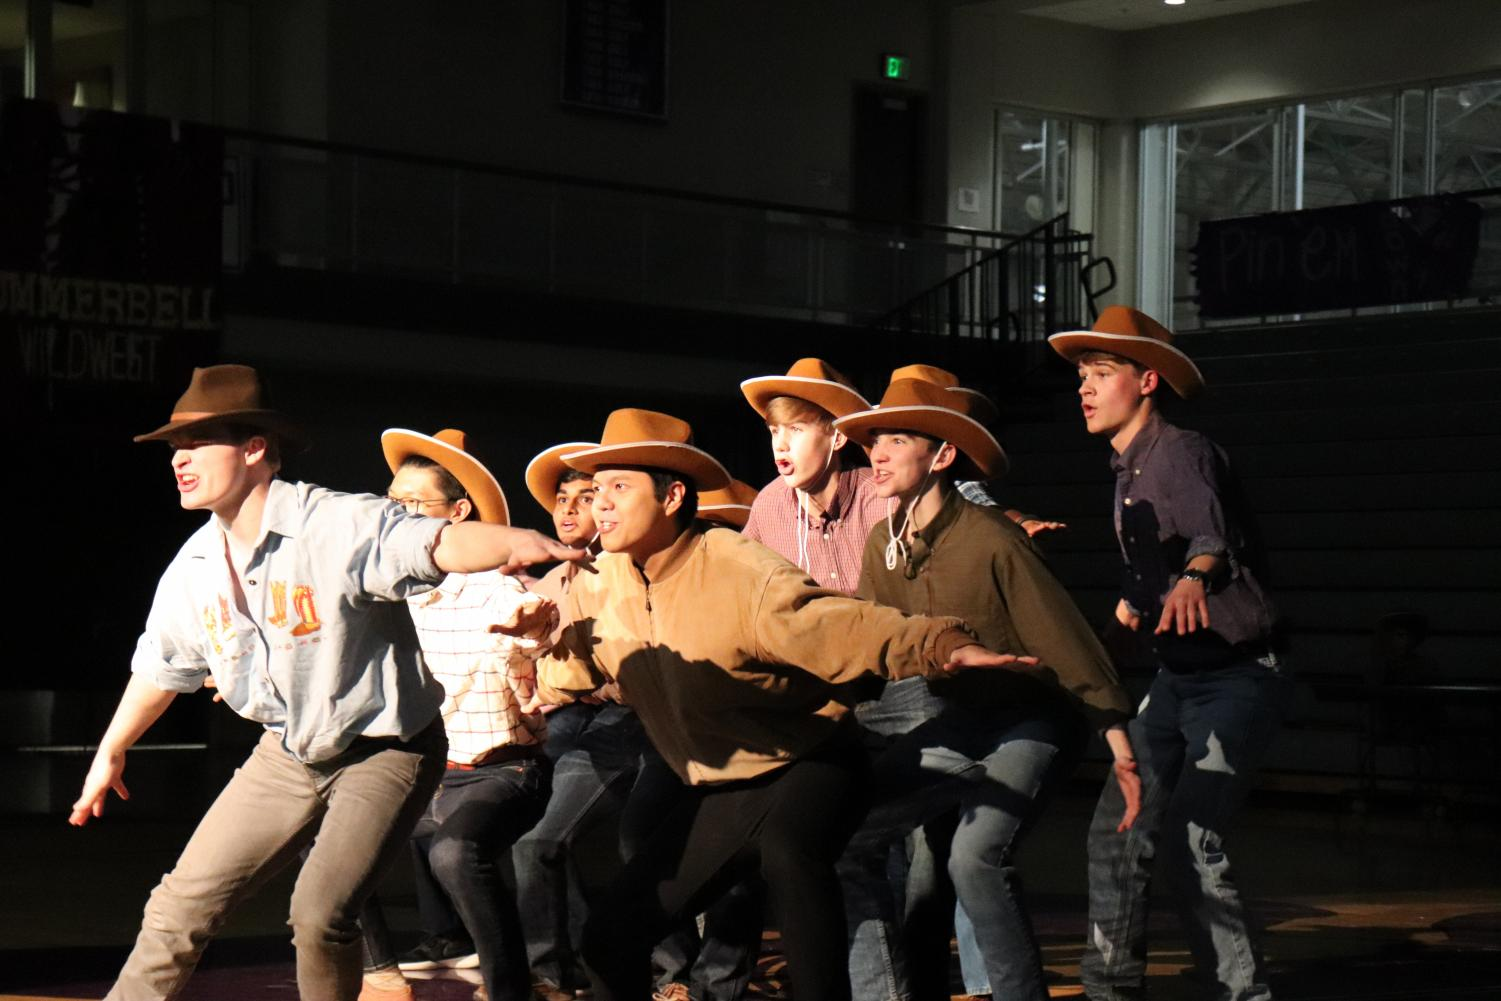 Summerbell+boys+group+together+while+dancing+along+to+their+Wild+West+theme.